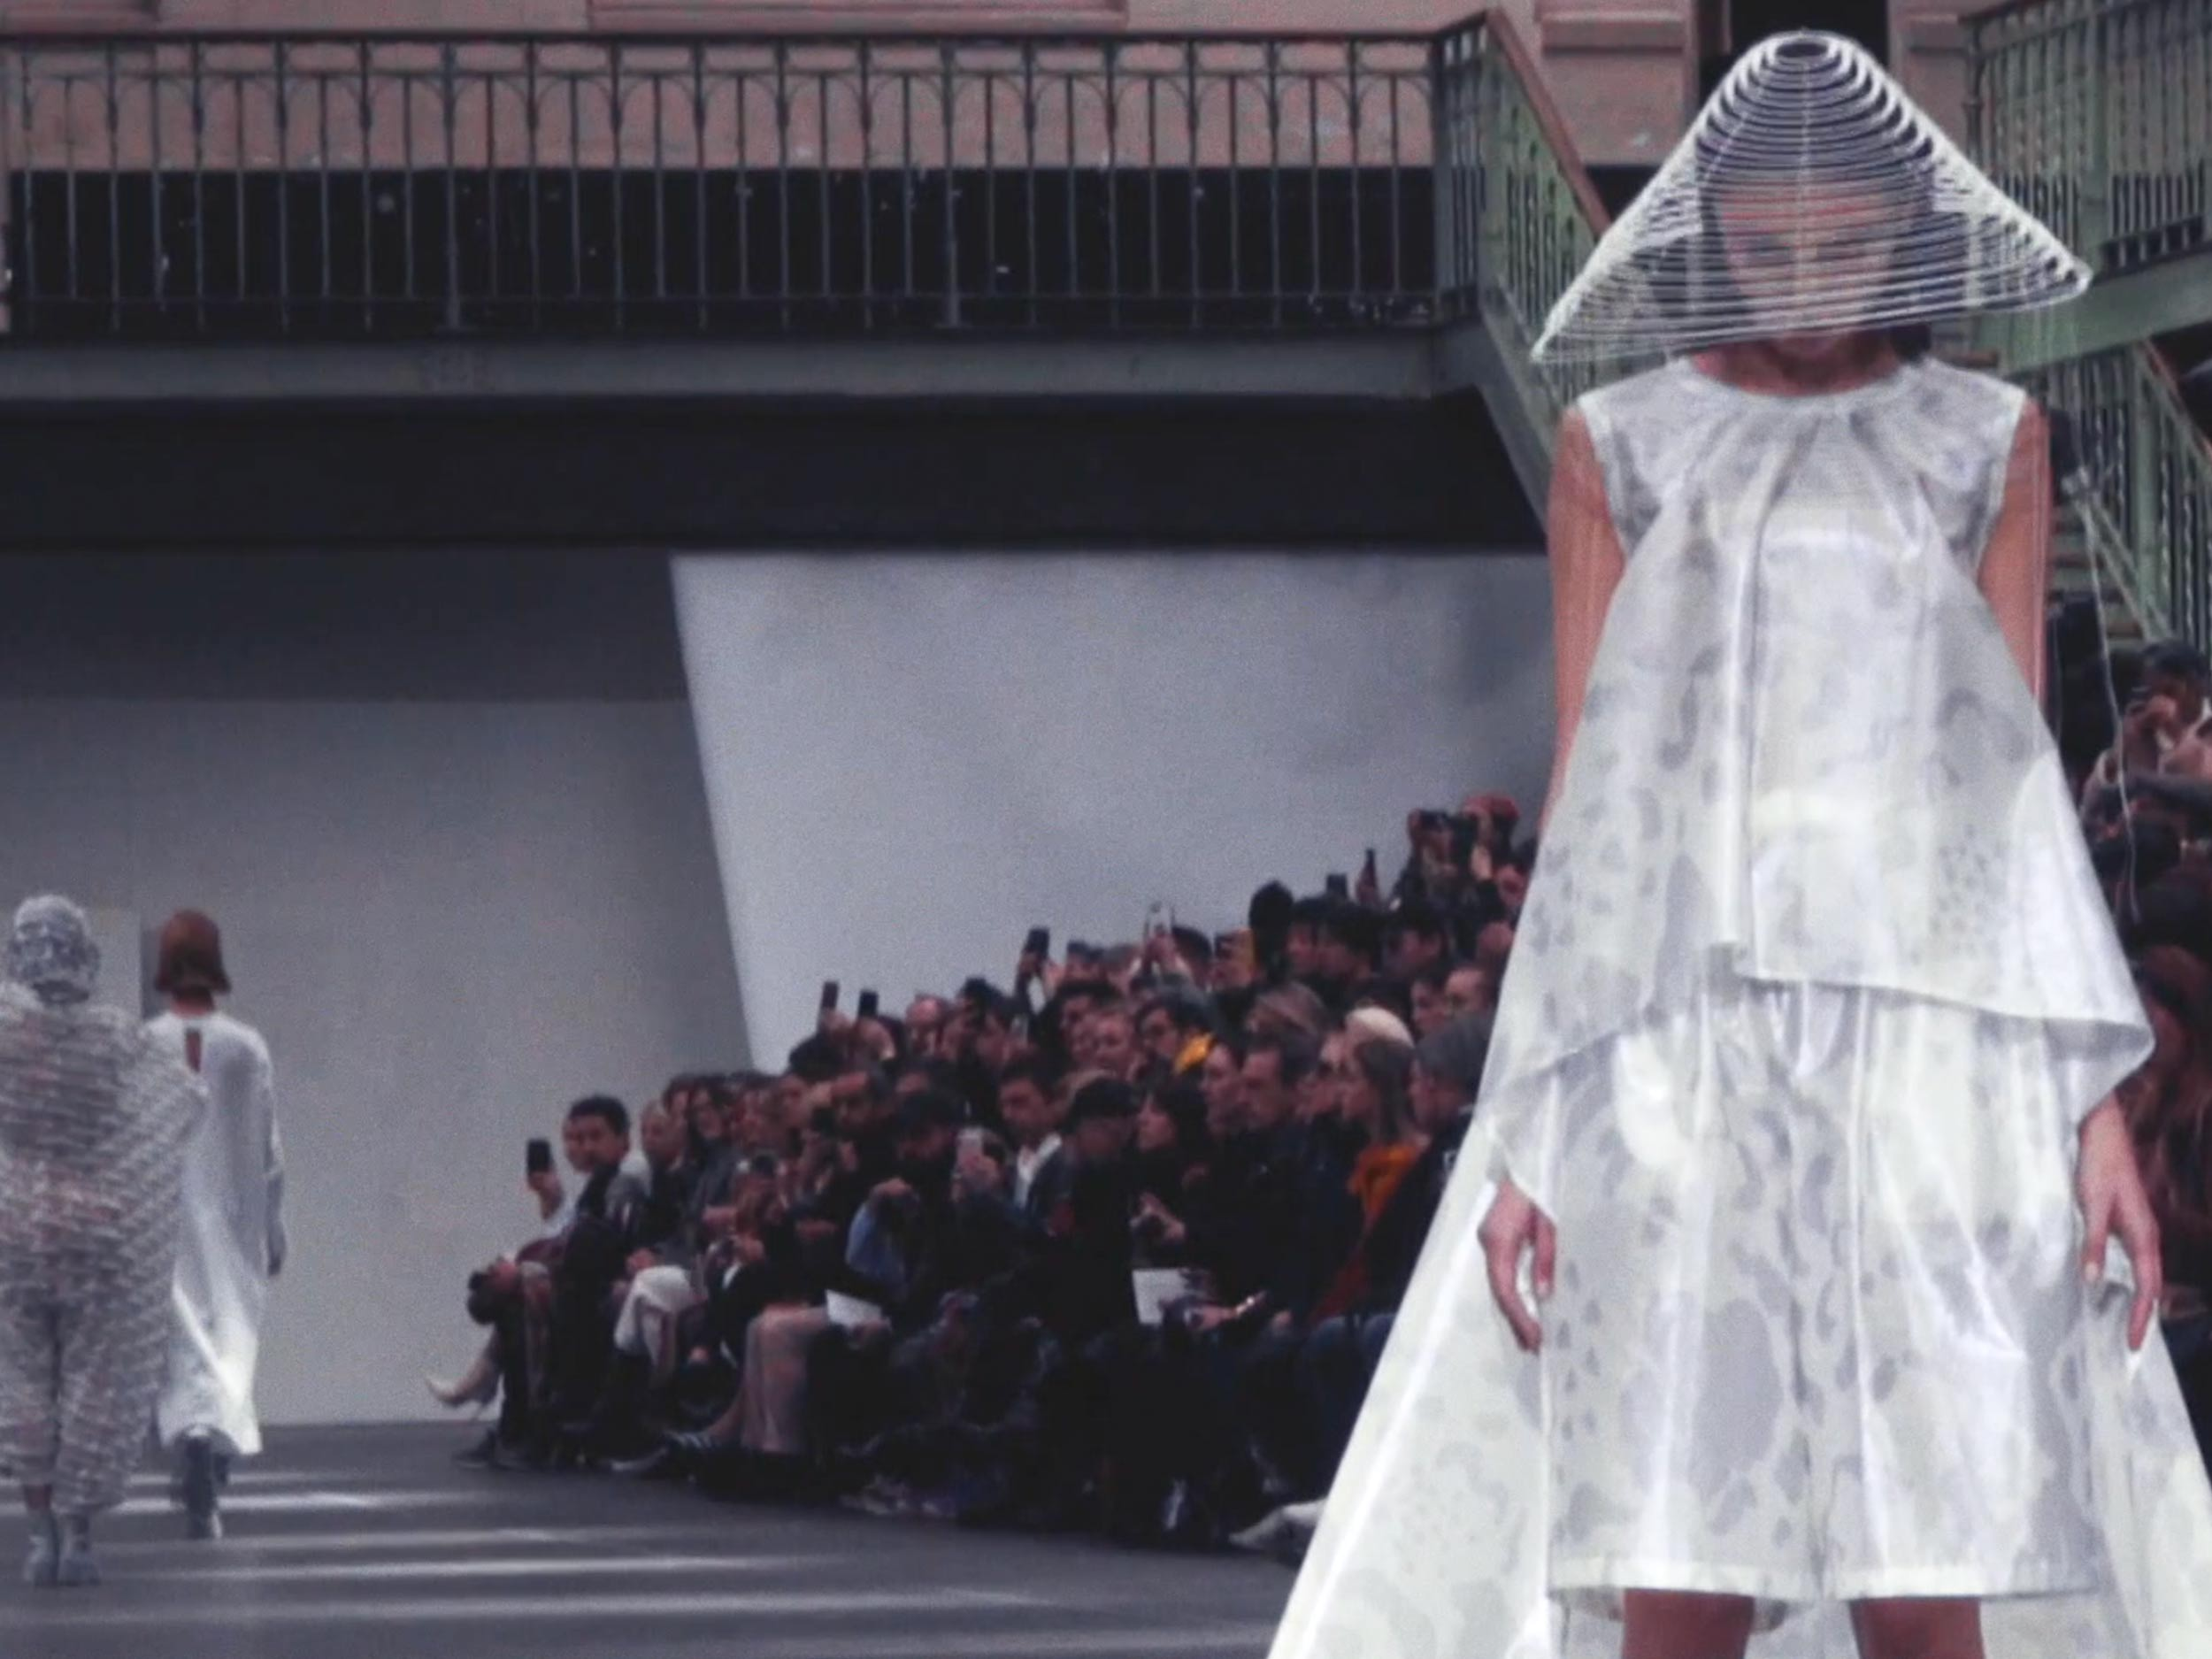 See Issey Miyake's future geometries in motion